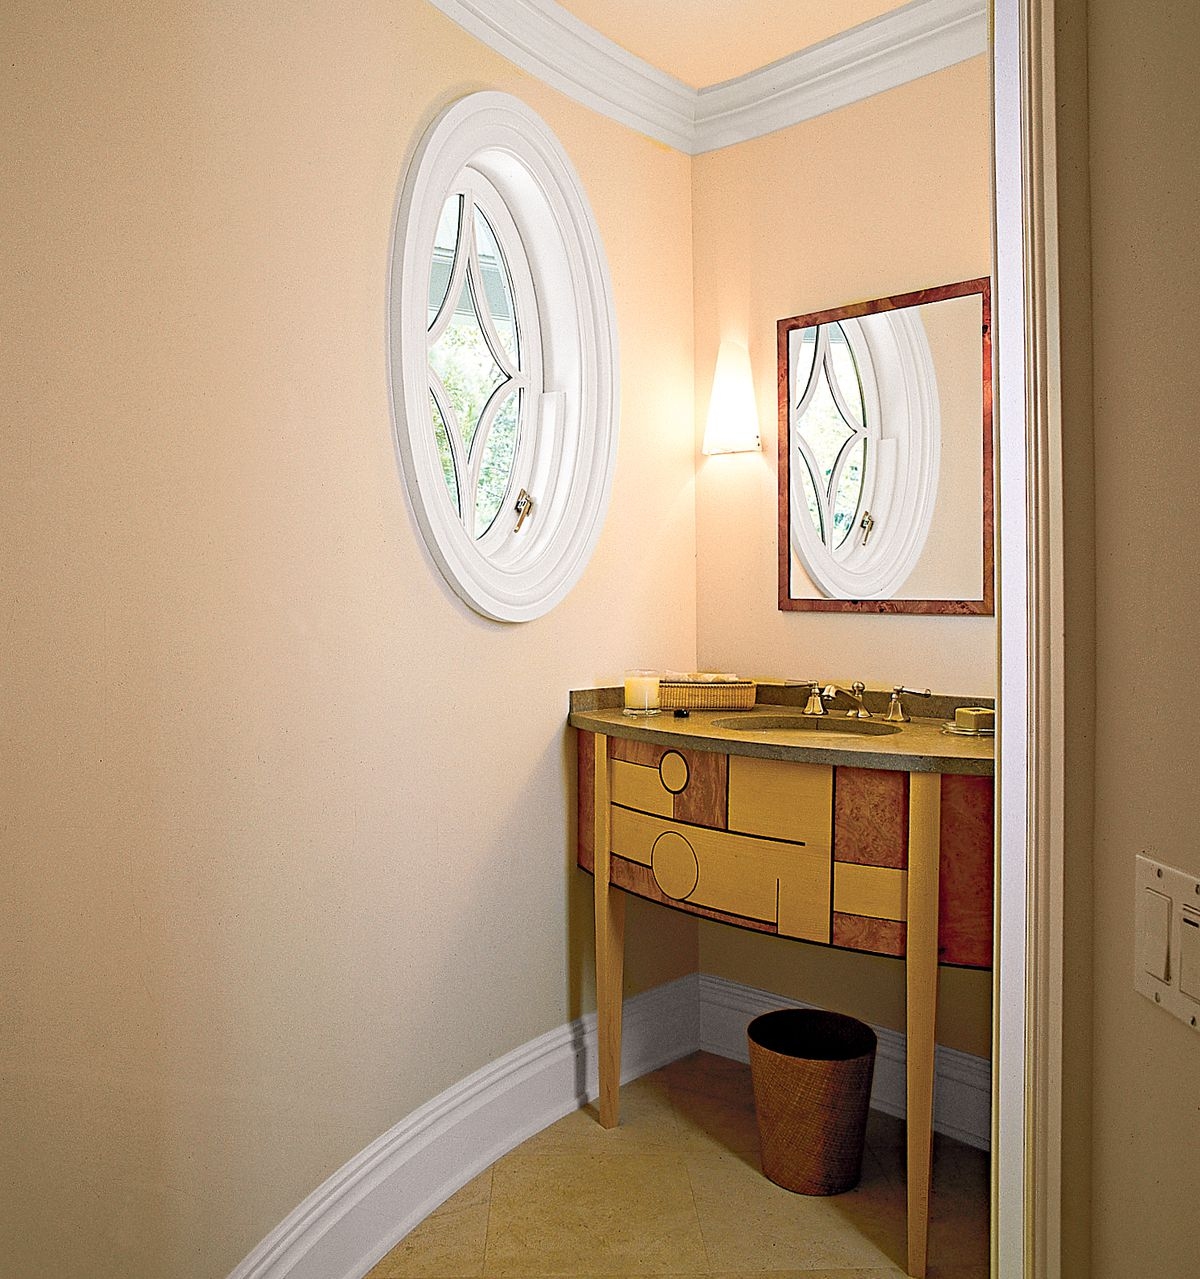 <p><strong>Throwing a Curve</strong><br> Architect Chris DiSunno commissioned a custom limestone-topped maple vanity to echo the curved wall in this under-the-stairs powder room. The commode sits at the opposite end of the room where the ceiling drops to 5 feet.</p>